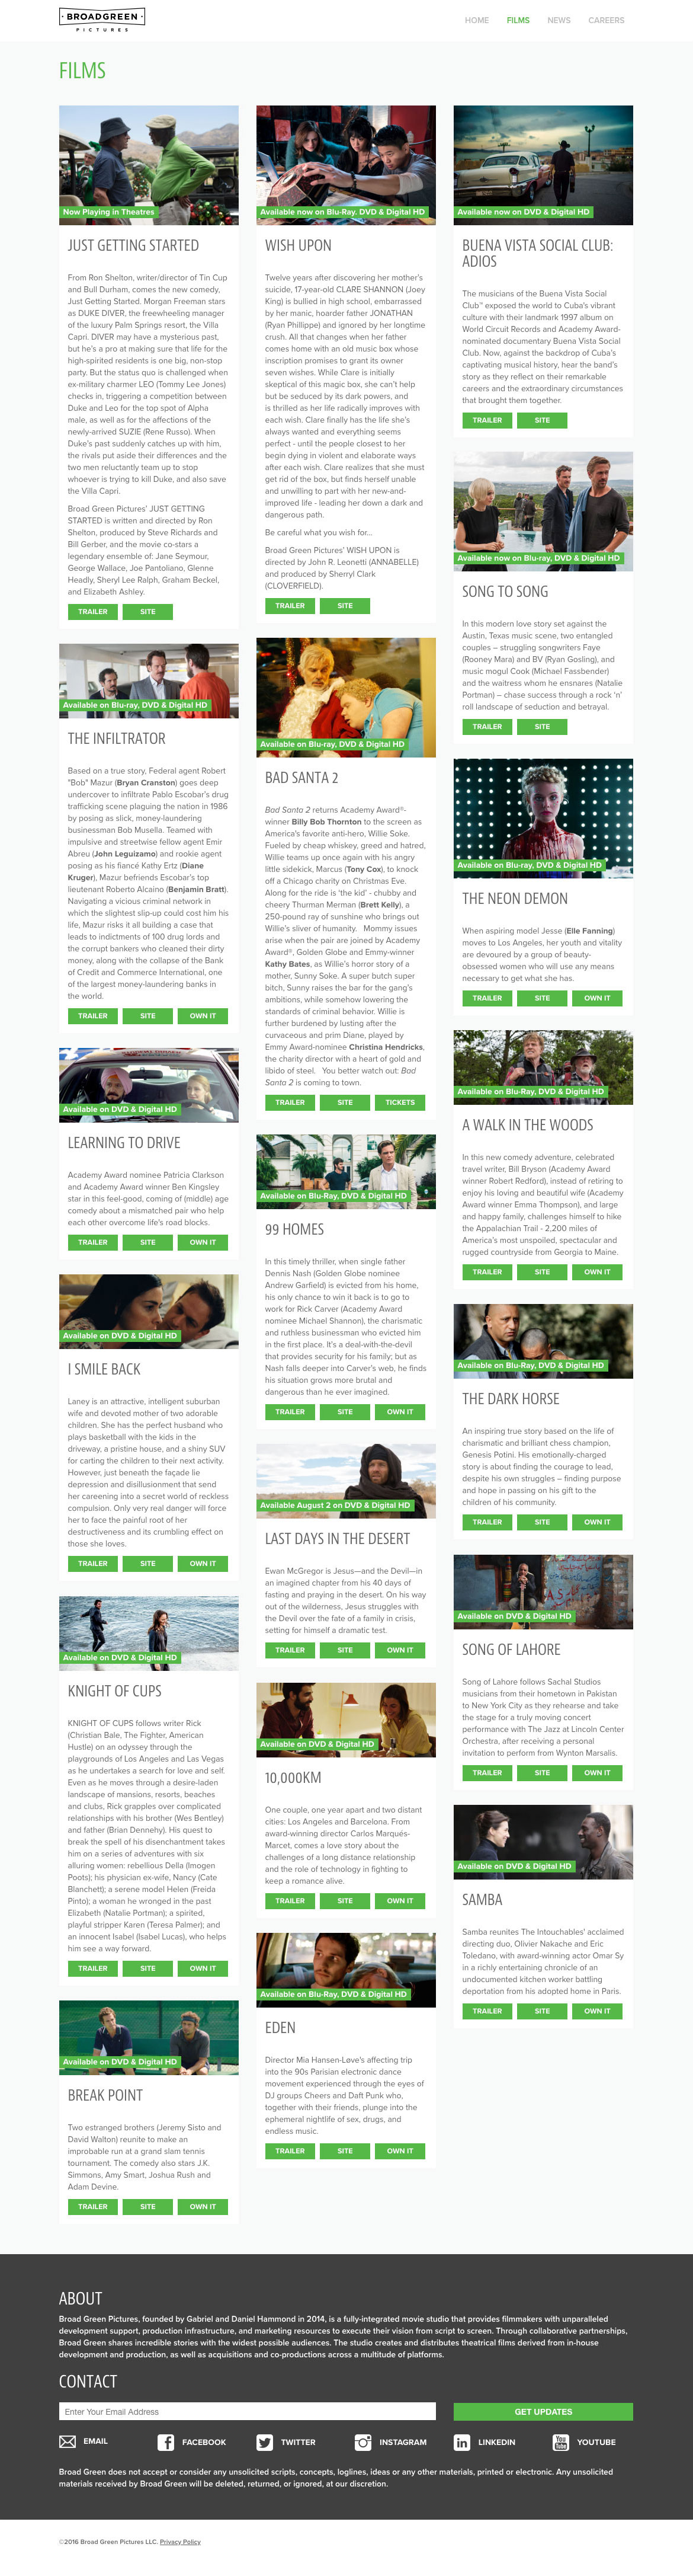 Broad Green Pictures Site